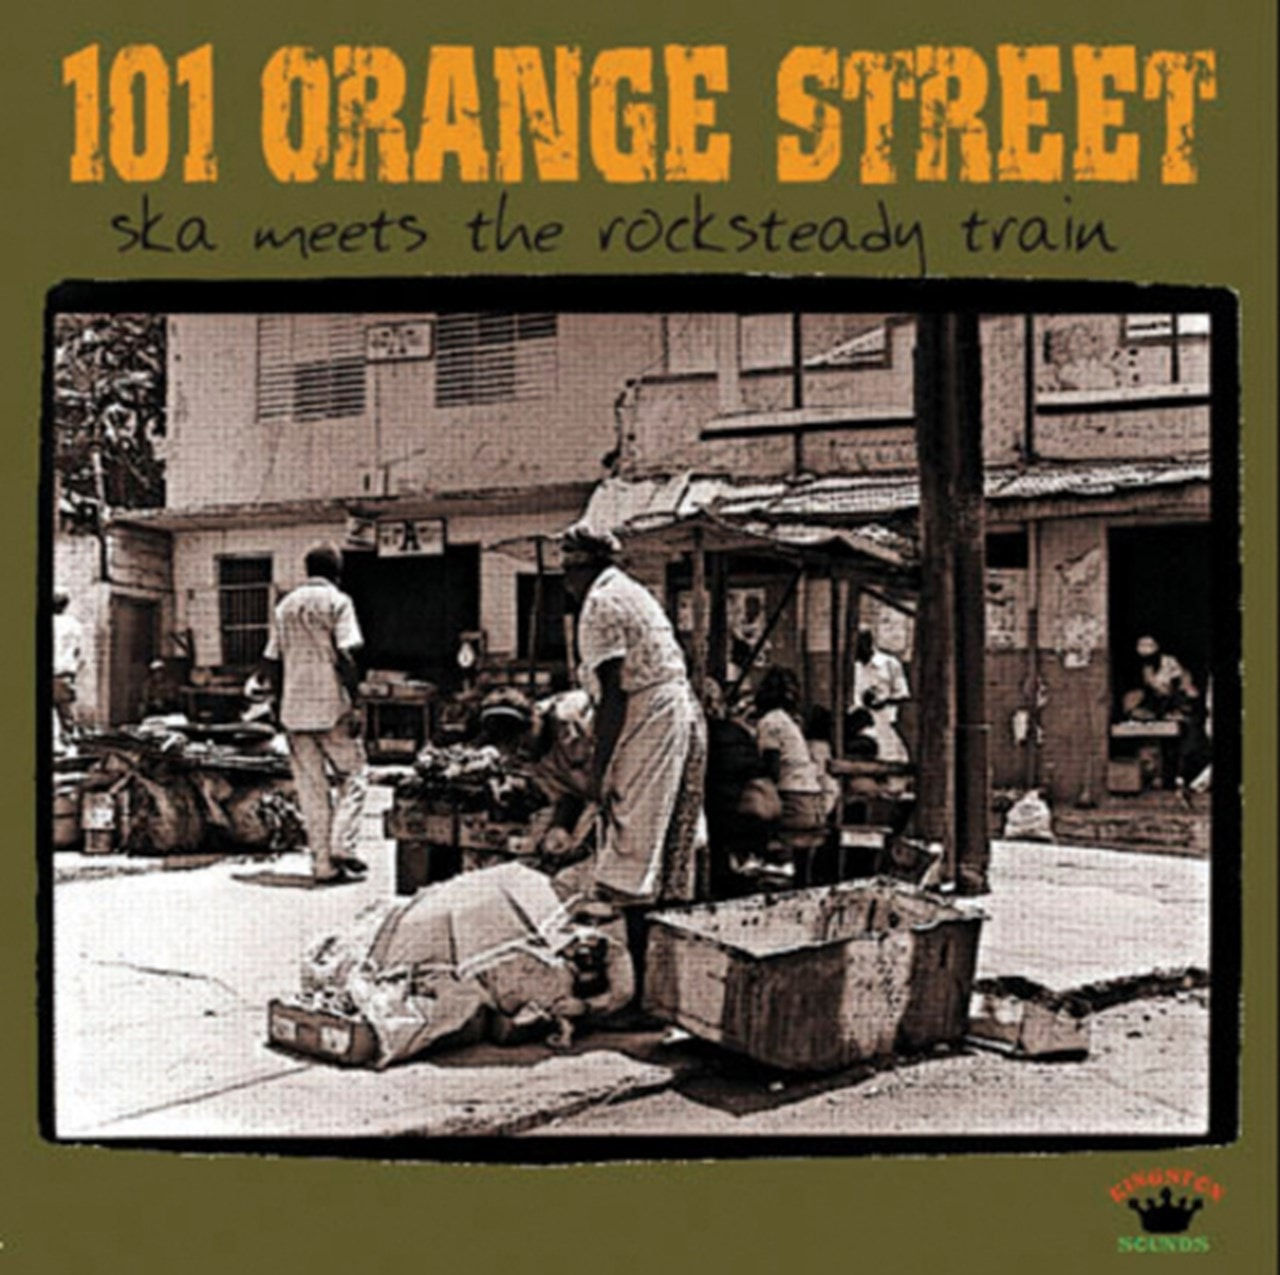 101 Orange Street: Ska Meets the Rocksteady Train - 1